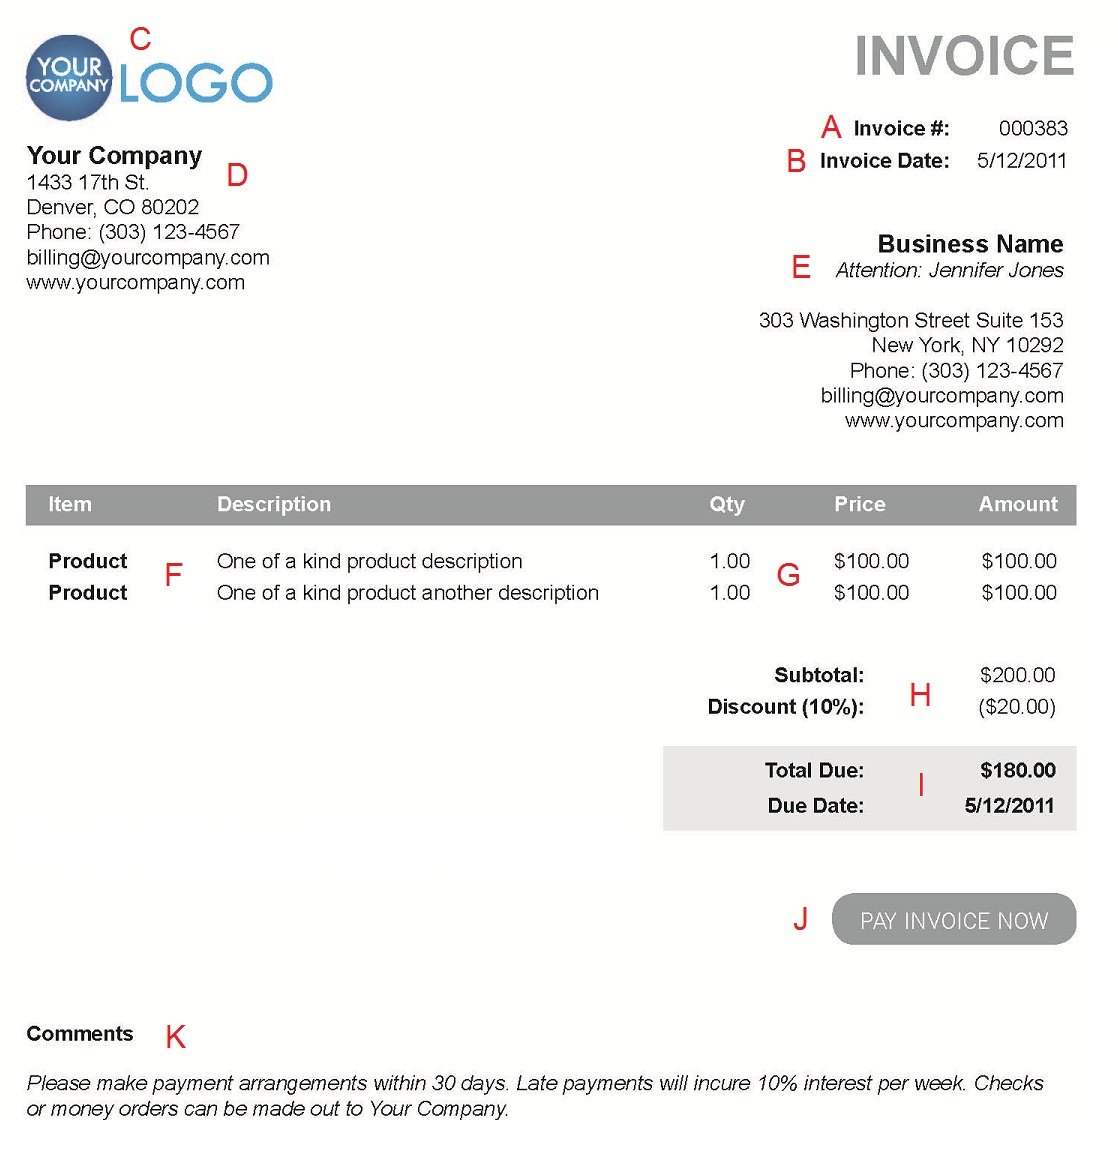 Coolmathgamesus  Inspiring The  Different Sections Of An Electronic Payment Invoice With Exquisite A  With Beauteous Hsbc Invoice Factoring Also Invoice Template In Excel  In Addition Used Car Sales Invoice And Vendor Invoice Processing As Well As Invoice Format In Word Additionally The Invoices From Paysimplecom With Coolmathgamesus  Exquisite The  Different Sections Of An Electronic Payment Invoice With Beauteous A  And Inspiring Hsbc Invoice Factoring Also Invoice Template In Excel  In Addition Used Car Sales Invoice From Paysimplecom